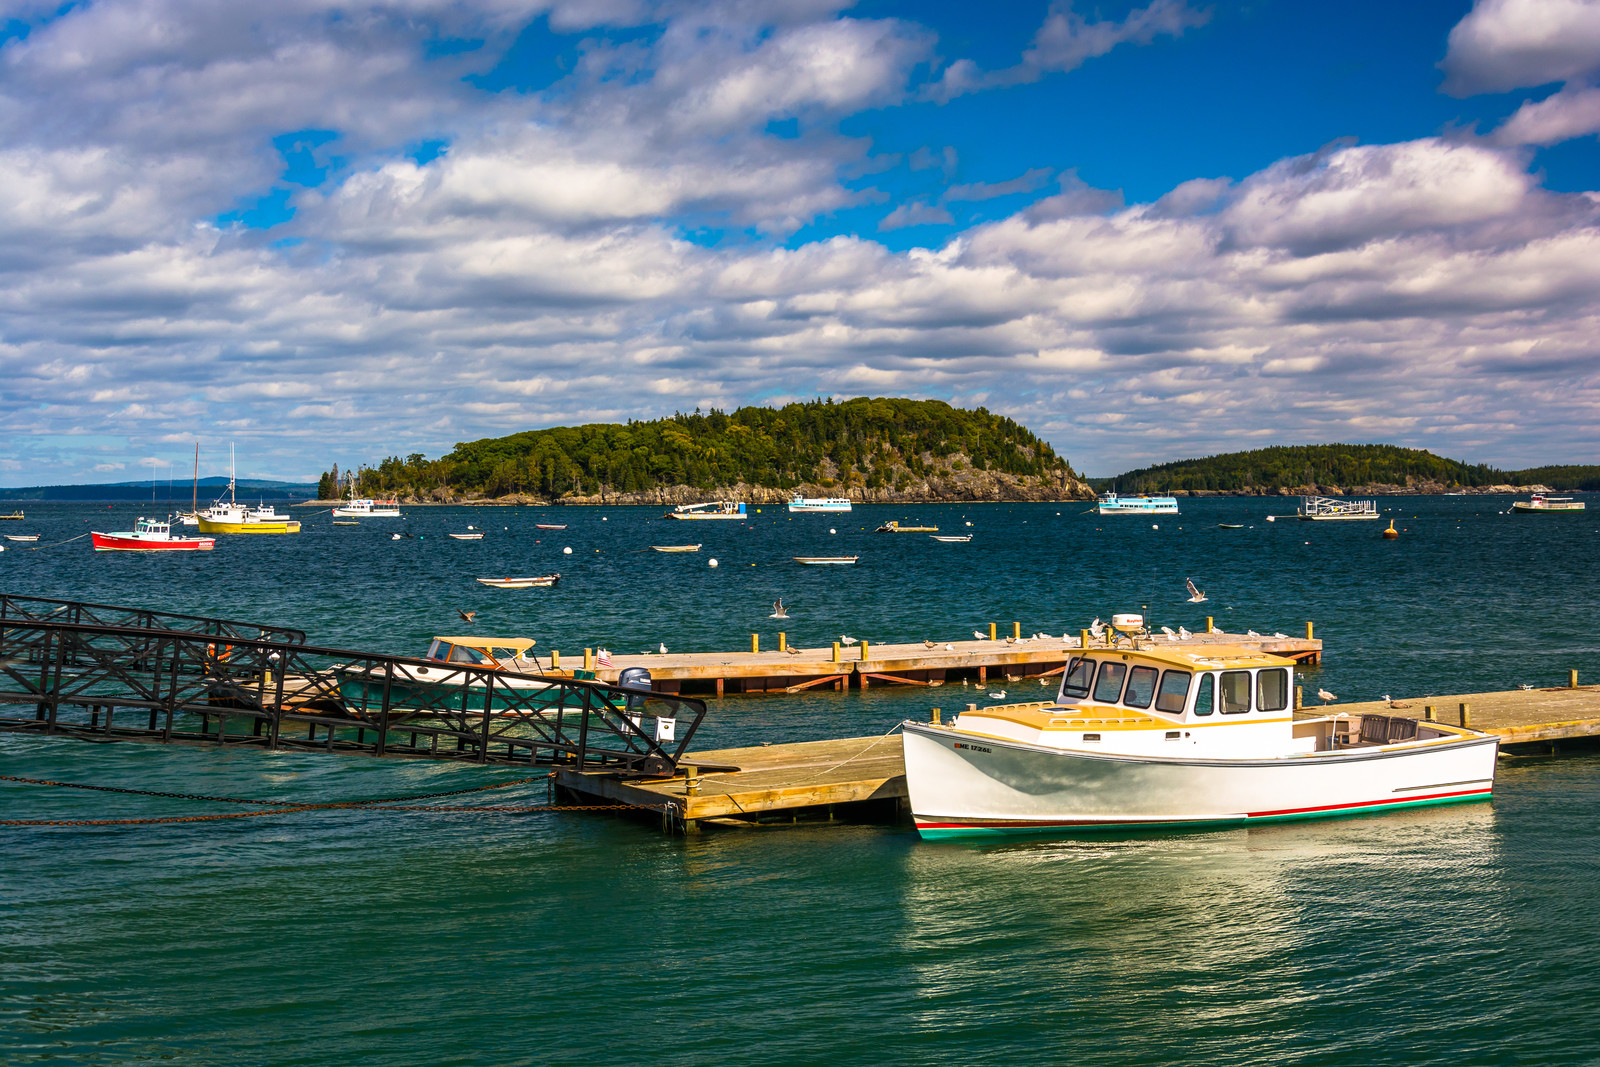 Blue skies with colorful Boats docked in frenchman bay, in bar harbor, maine.